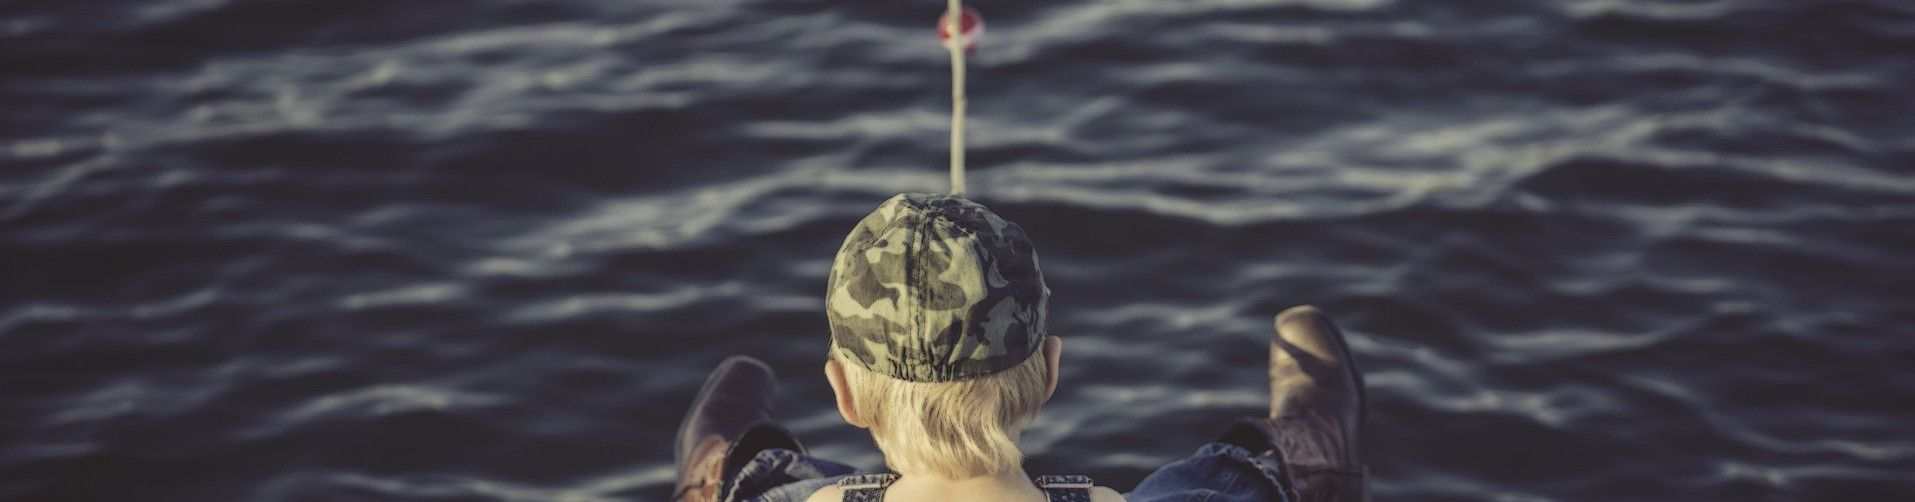 Great Ideas About Kids and Fishing